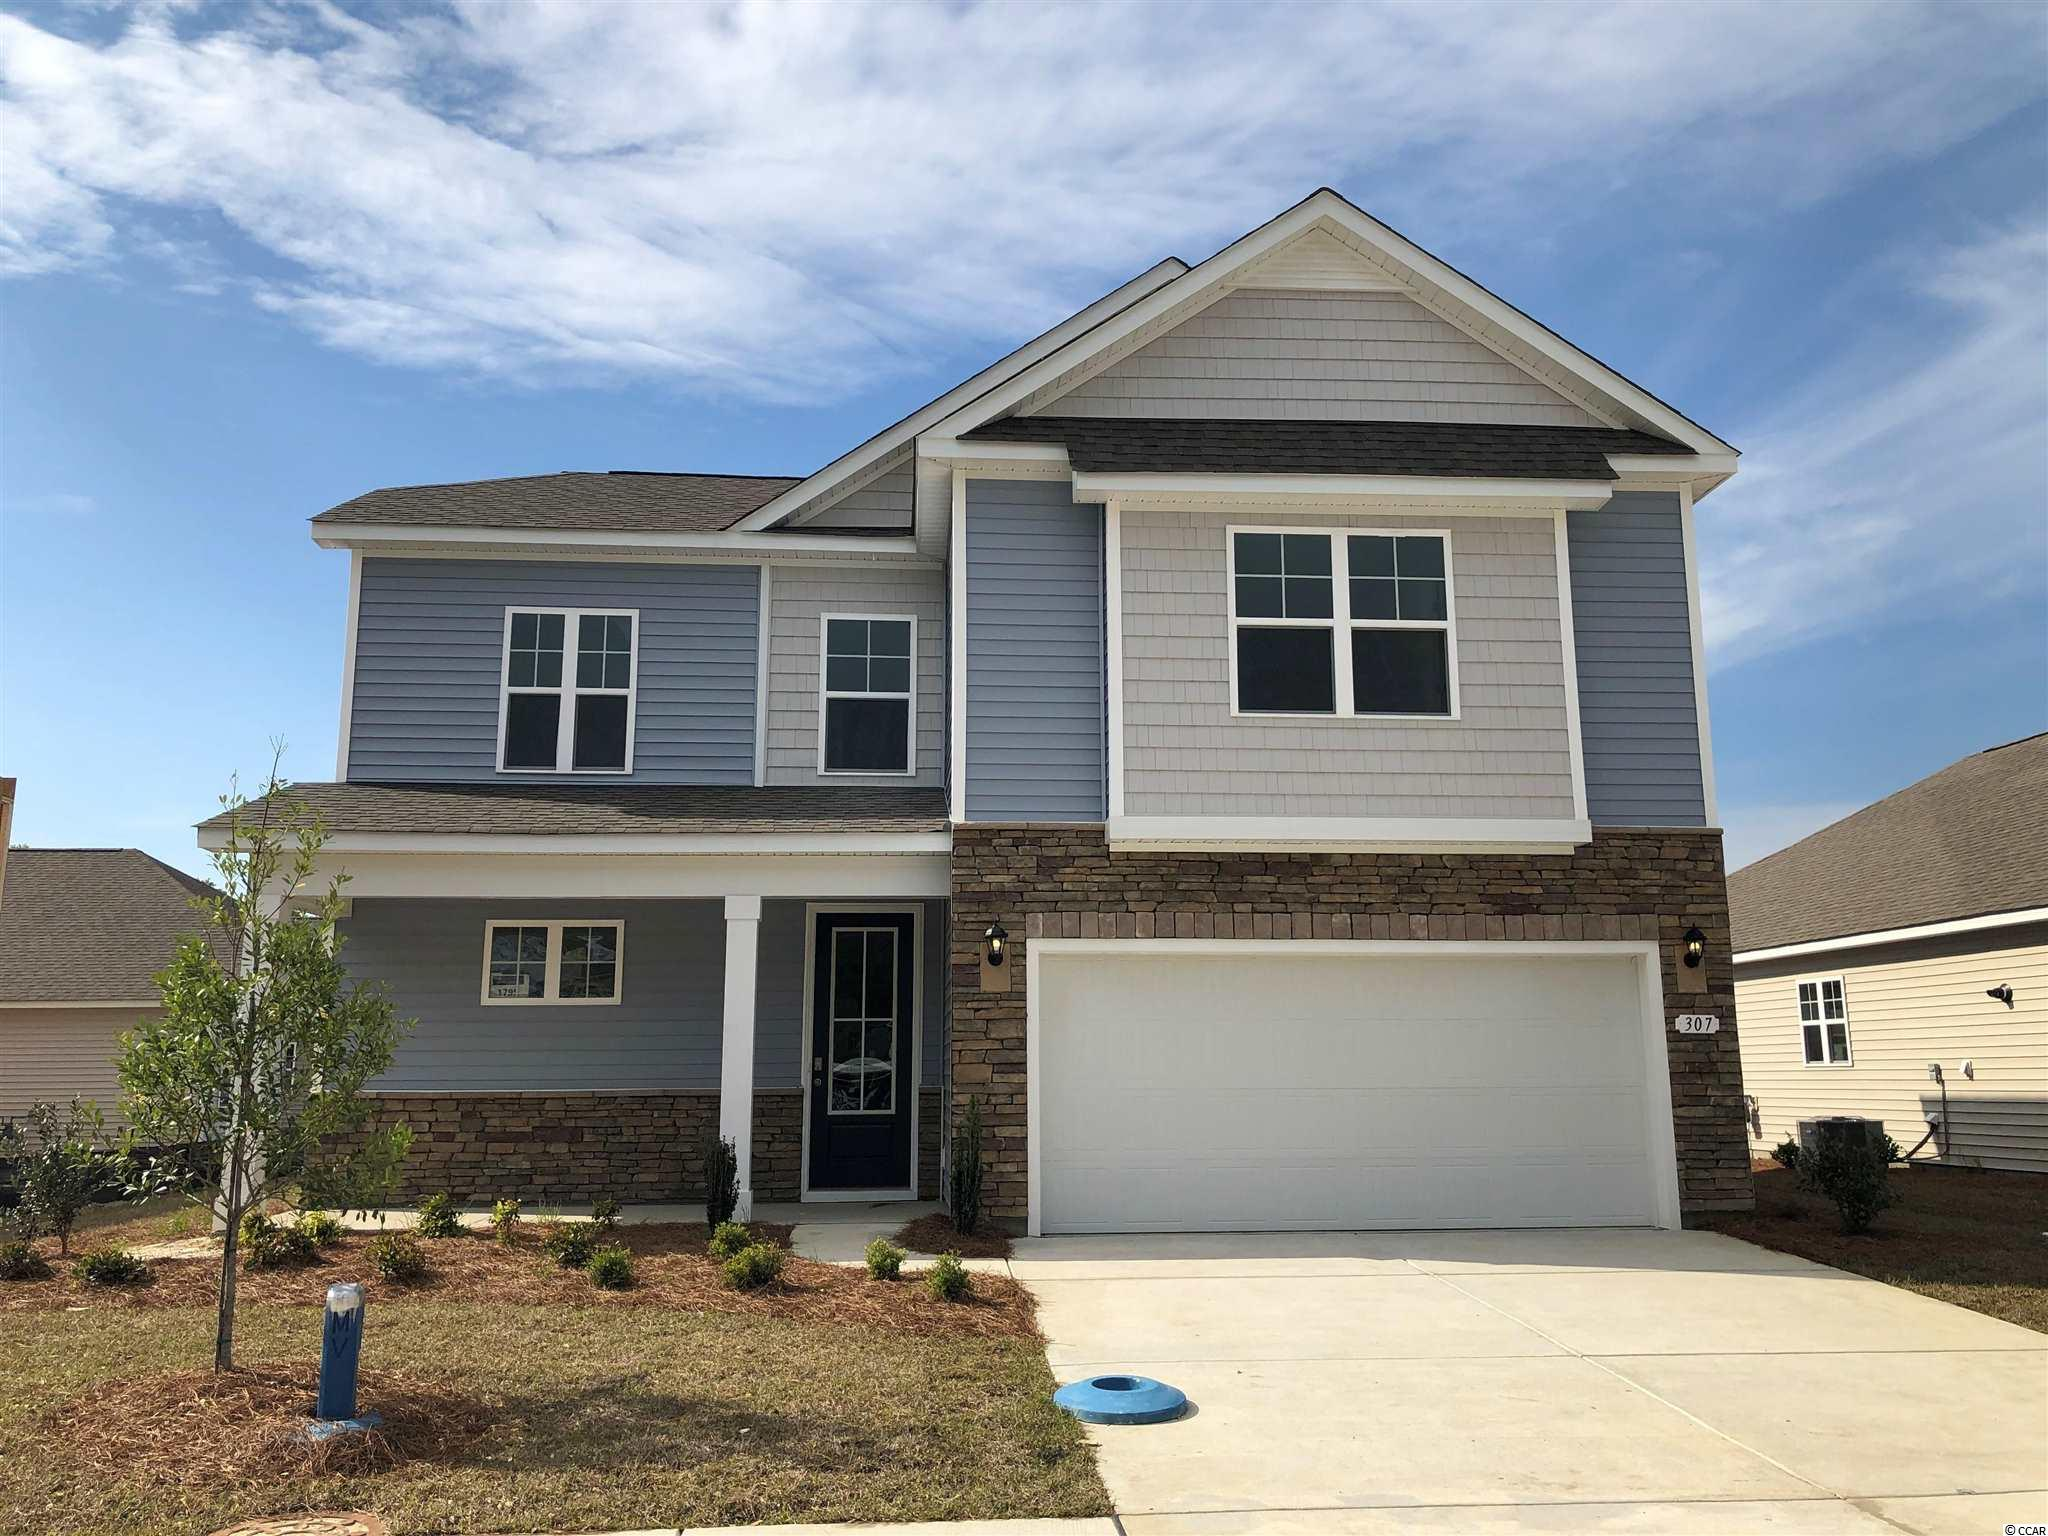 New phase now selling! Hidden Brooke is a beautiful community with an amenity that includes a pool with large deck area, clubhouse, exercise room, and fire pit overlooking the water. Minutes away from Highway 31 which provides quick and easy access to all of the Grand Strand's offerings: dining, entertainment, shopping, and golf! Tranquil setting just a short drive to the beach. This home has everything you are looking for! Our Belfort plan with a stacked stone elevation, 8 ft. entry door, and inviting front porch. Spacious kitchen with white painted cabinets, granite countertops, a large island overlooking the family room, walk-in pantry, and stainless Whirlpool appliances. Beautiful laminate wood flooring throughout the main living areas with tile in the bathrooms and laundry room and sliding glass doors off the dining area lead to the rear screen porch creating a seamless transition from indoor to outdoor living. The first floor primary bedroom suite will feature an extended sitting room space along with a large shower, dual vanity, walk-in closet, and a separate linen closet for additional storage. Three nicely sized bedrooms and a versatile loft space are upstairs! This home will also feature an additional concrete patio off the screen porch and blinds throughout. It gets better- this is America's Smart Home! Ask an agent today about our industry leading smart home technology package that is included in all of our new homes. *Photos are of a similar Belfort home. (Home and community information, including pricing, included features, terms, availability and amenities, are subject to change prior to sale at any time without notice or obligation. Square footages are approximate. Pictures, photographs, colors, features, and sizes are for illustration purposes only and will vary from the homes as built. Equal housing opportunity builder.)